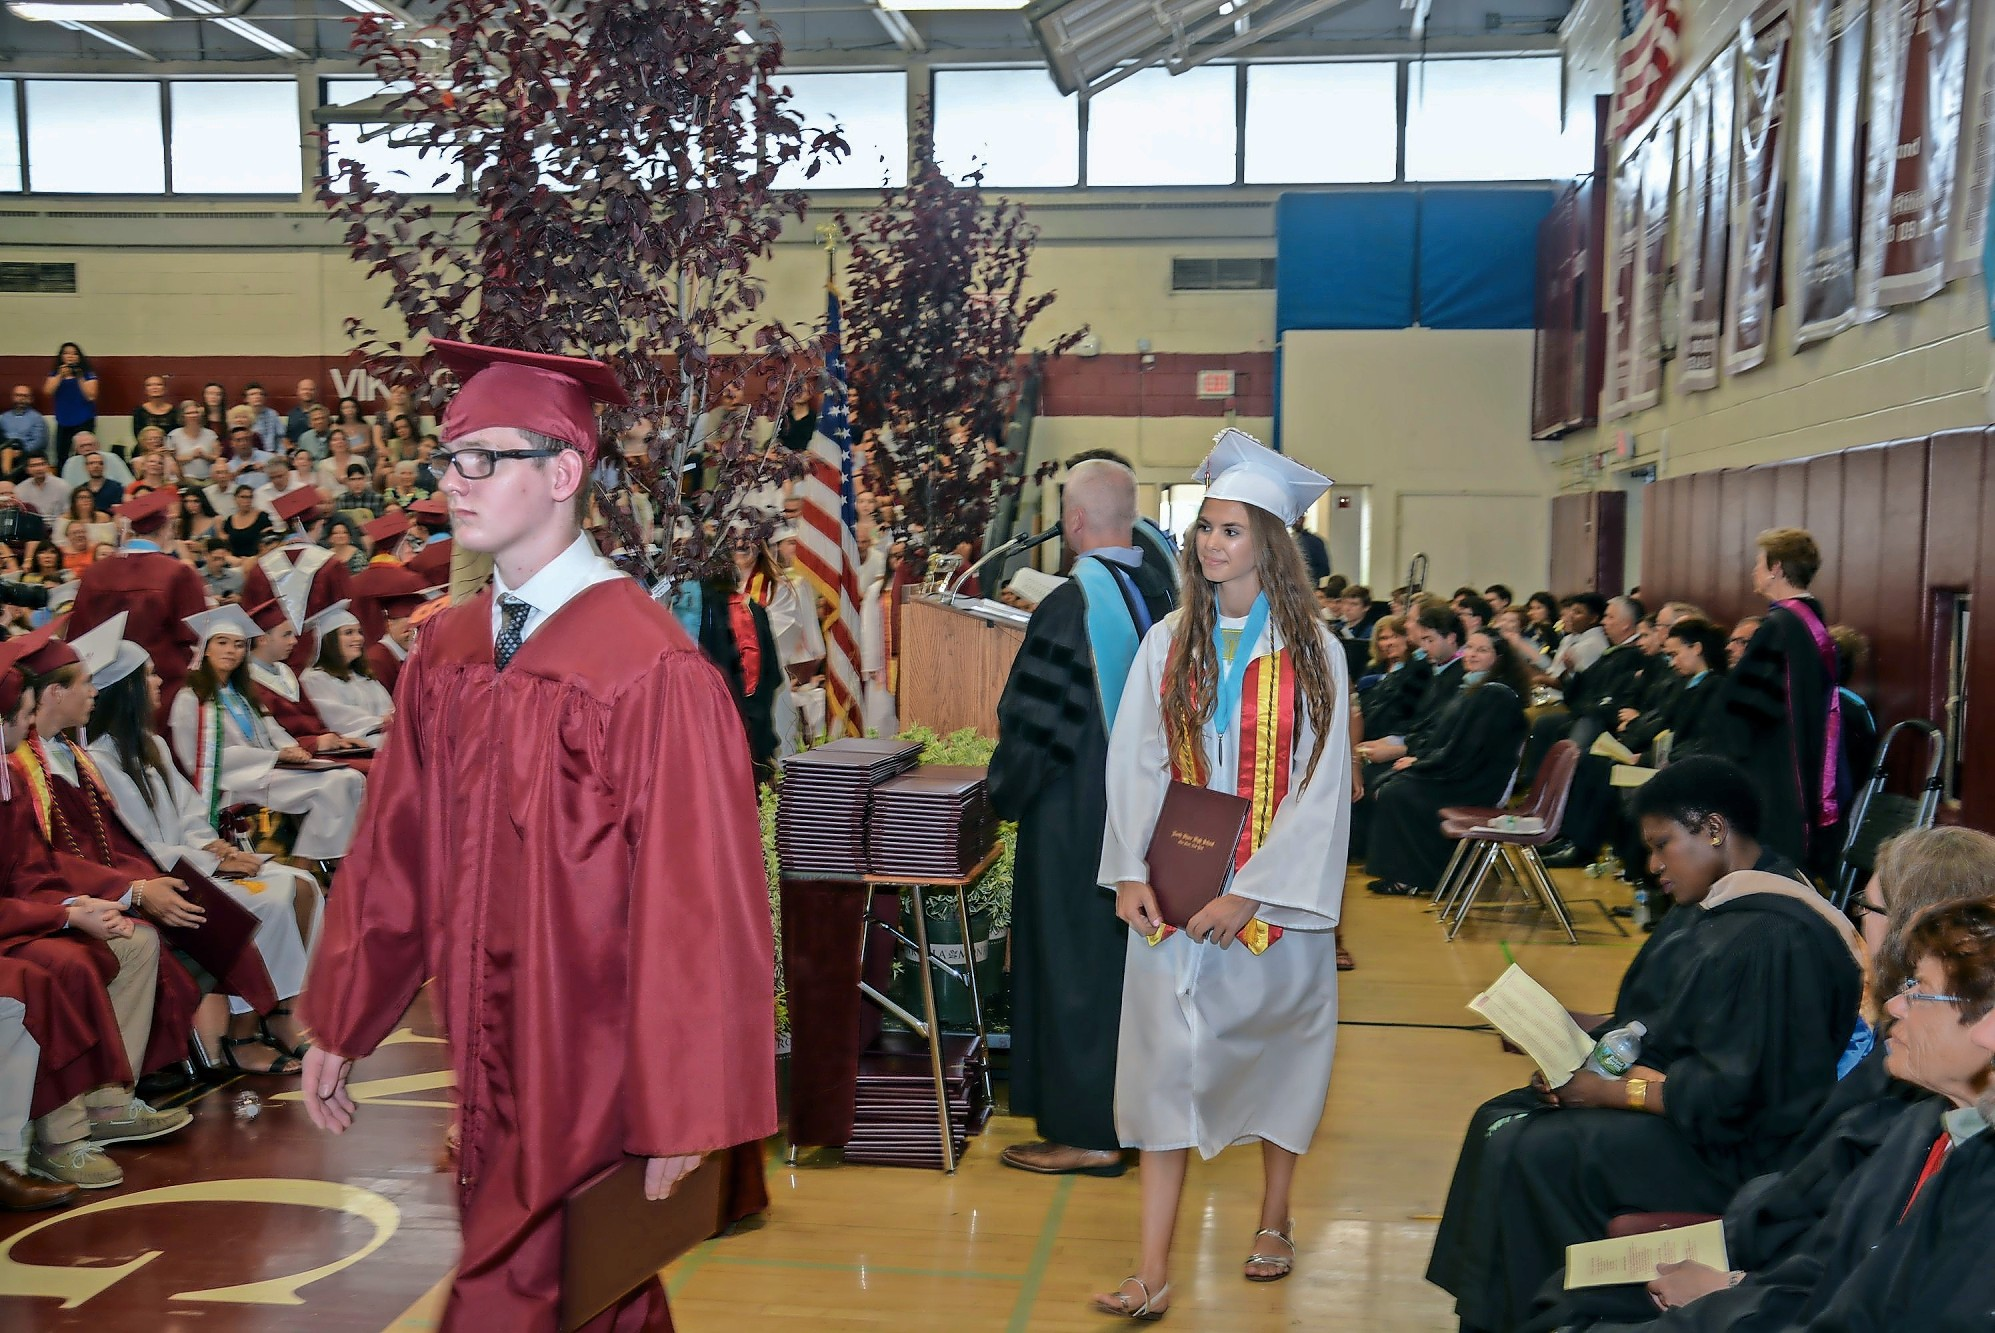 Students received diplomas from Principal Albert Cousins.